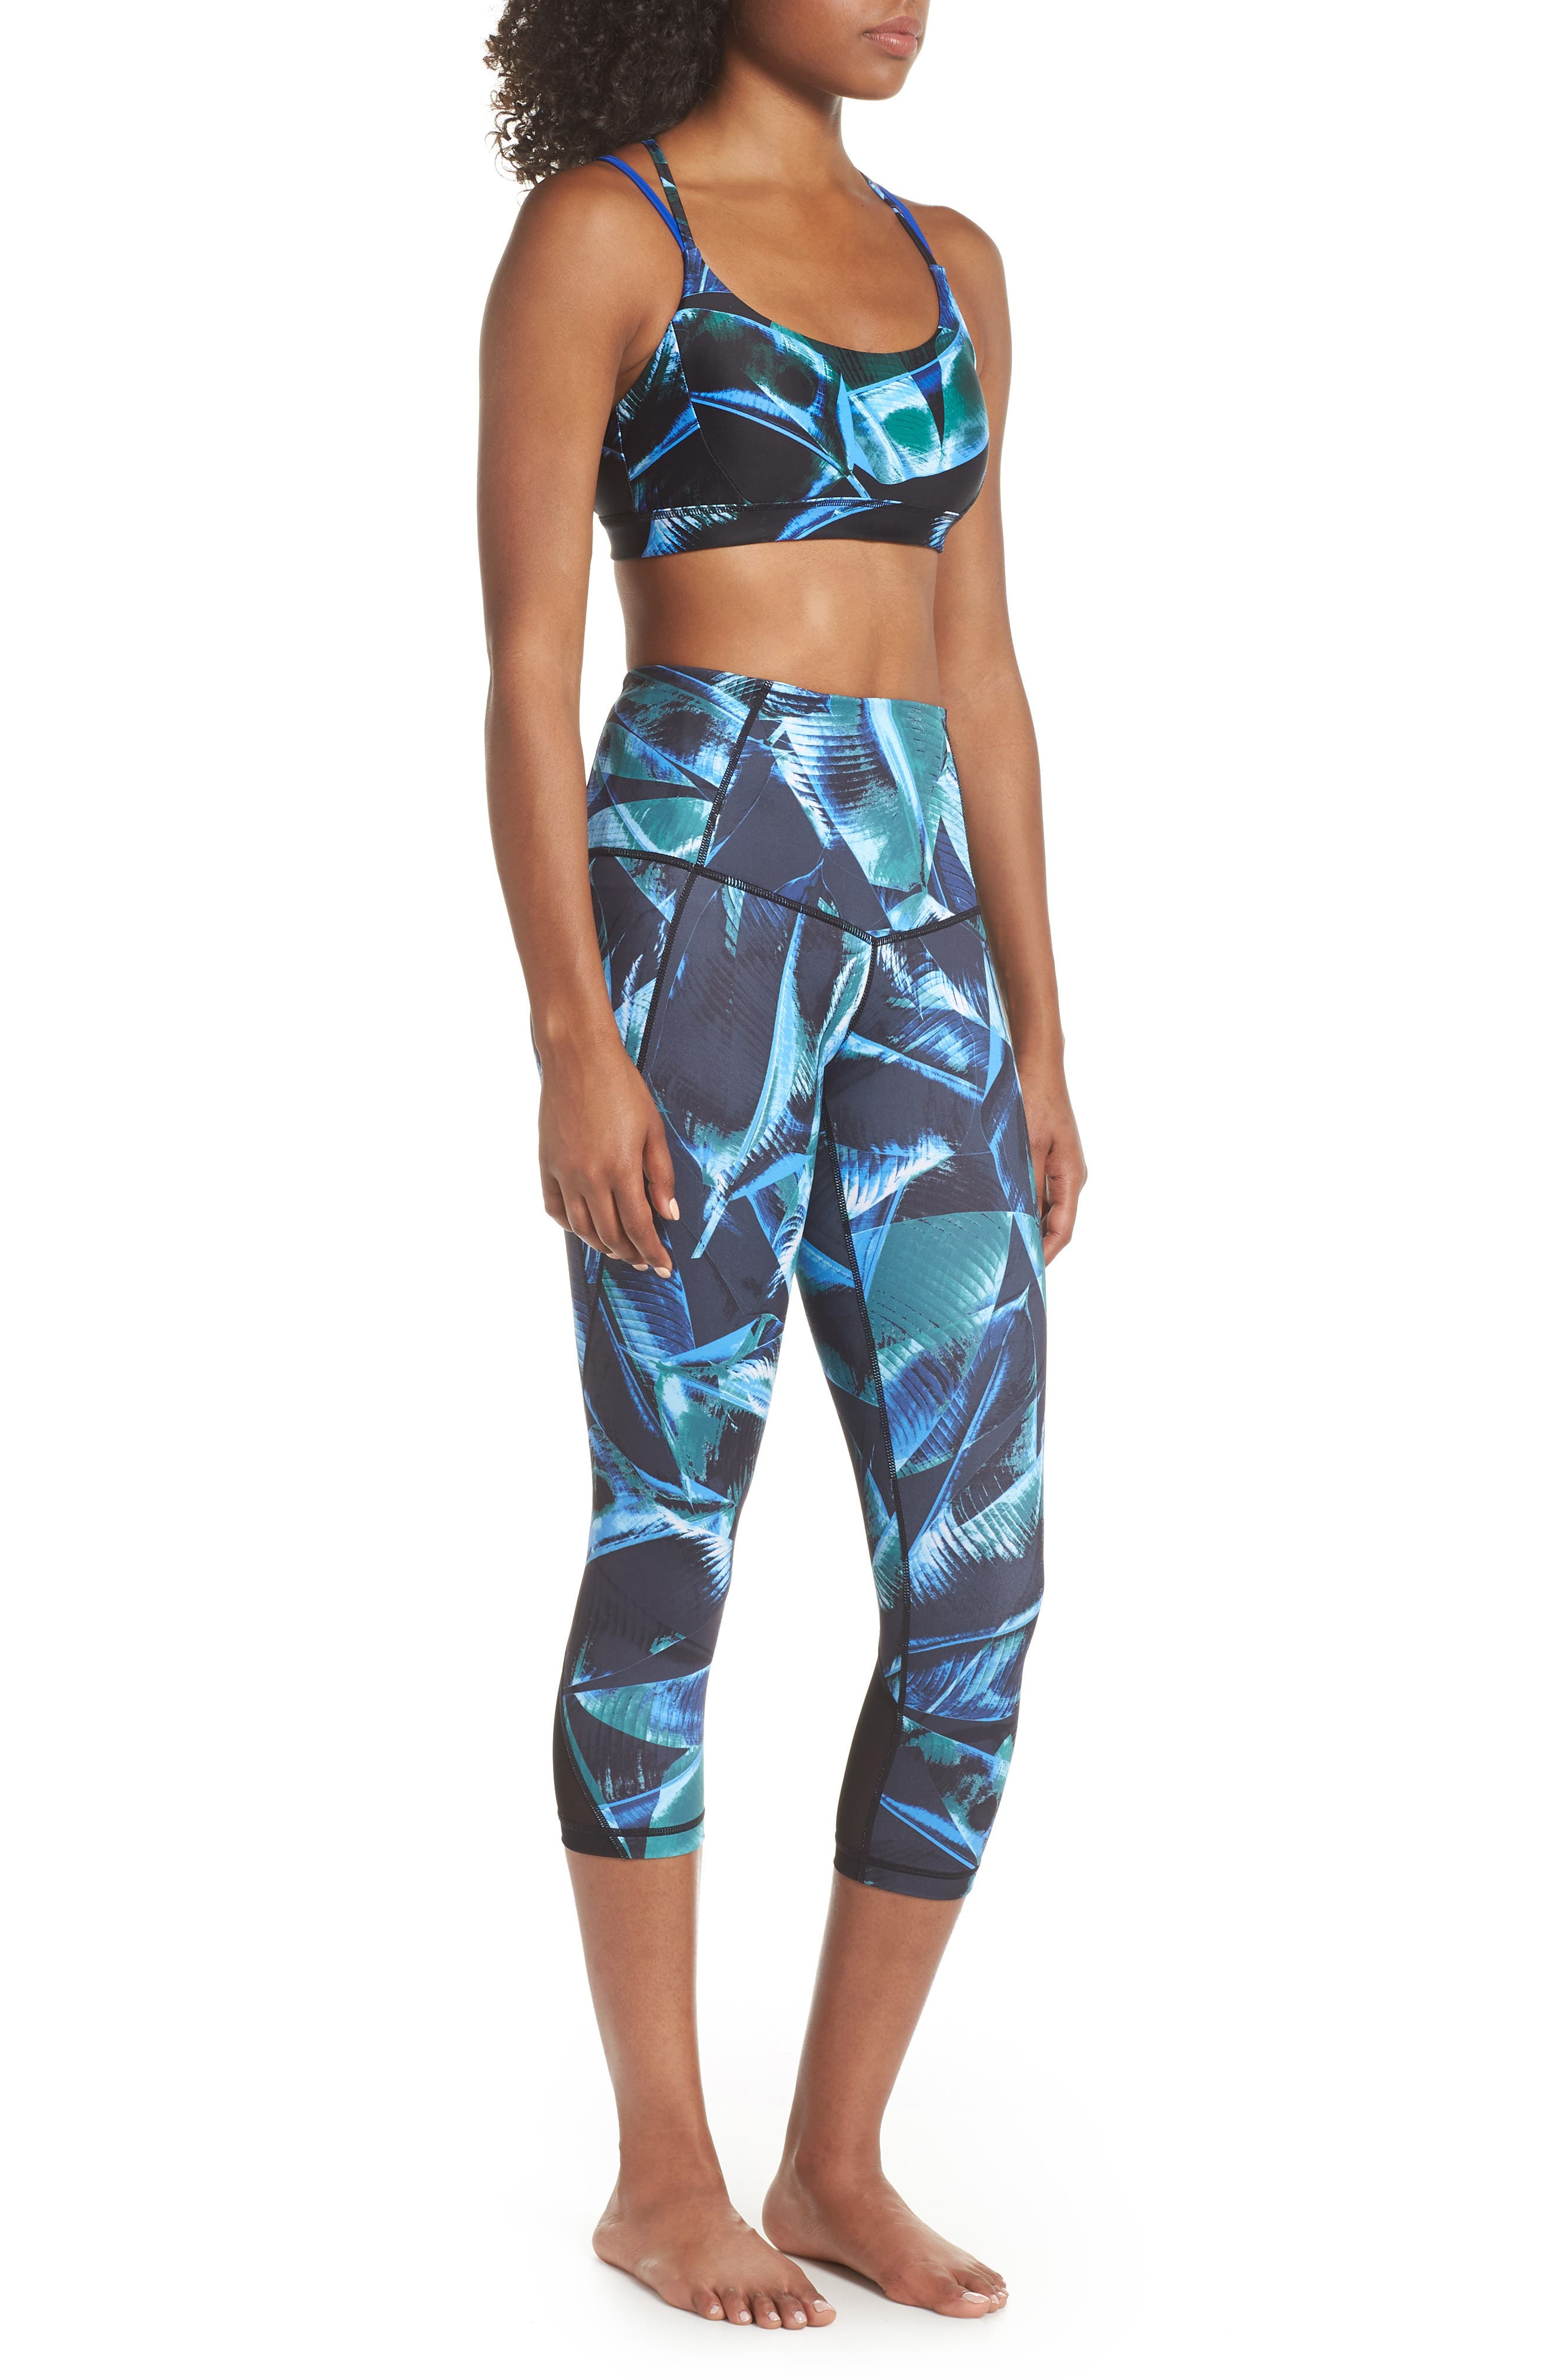 So Hot Print Sports Bra,                             Alternate thumbnail 10, color,                             310